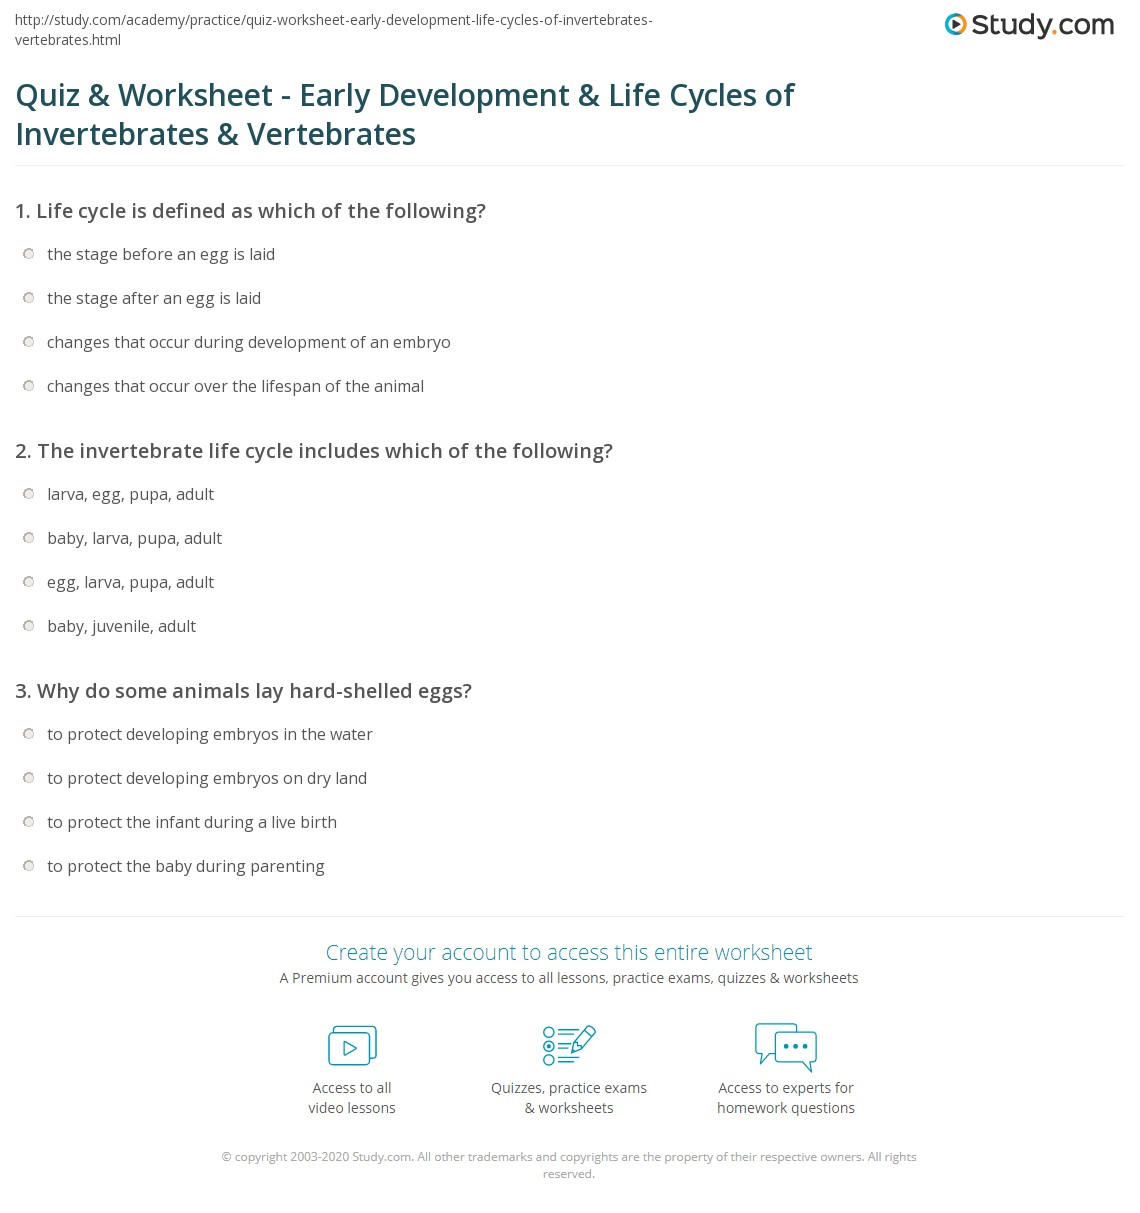 Quiz & Worksheet - Early Development & Life Cycles of  free worksheets, learning, math worksheets, and grade worksheets Vertebrates Invertebrates Worksheet 2 1205 x 1140